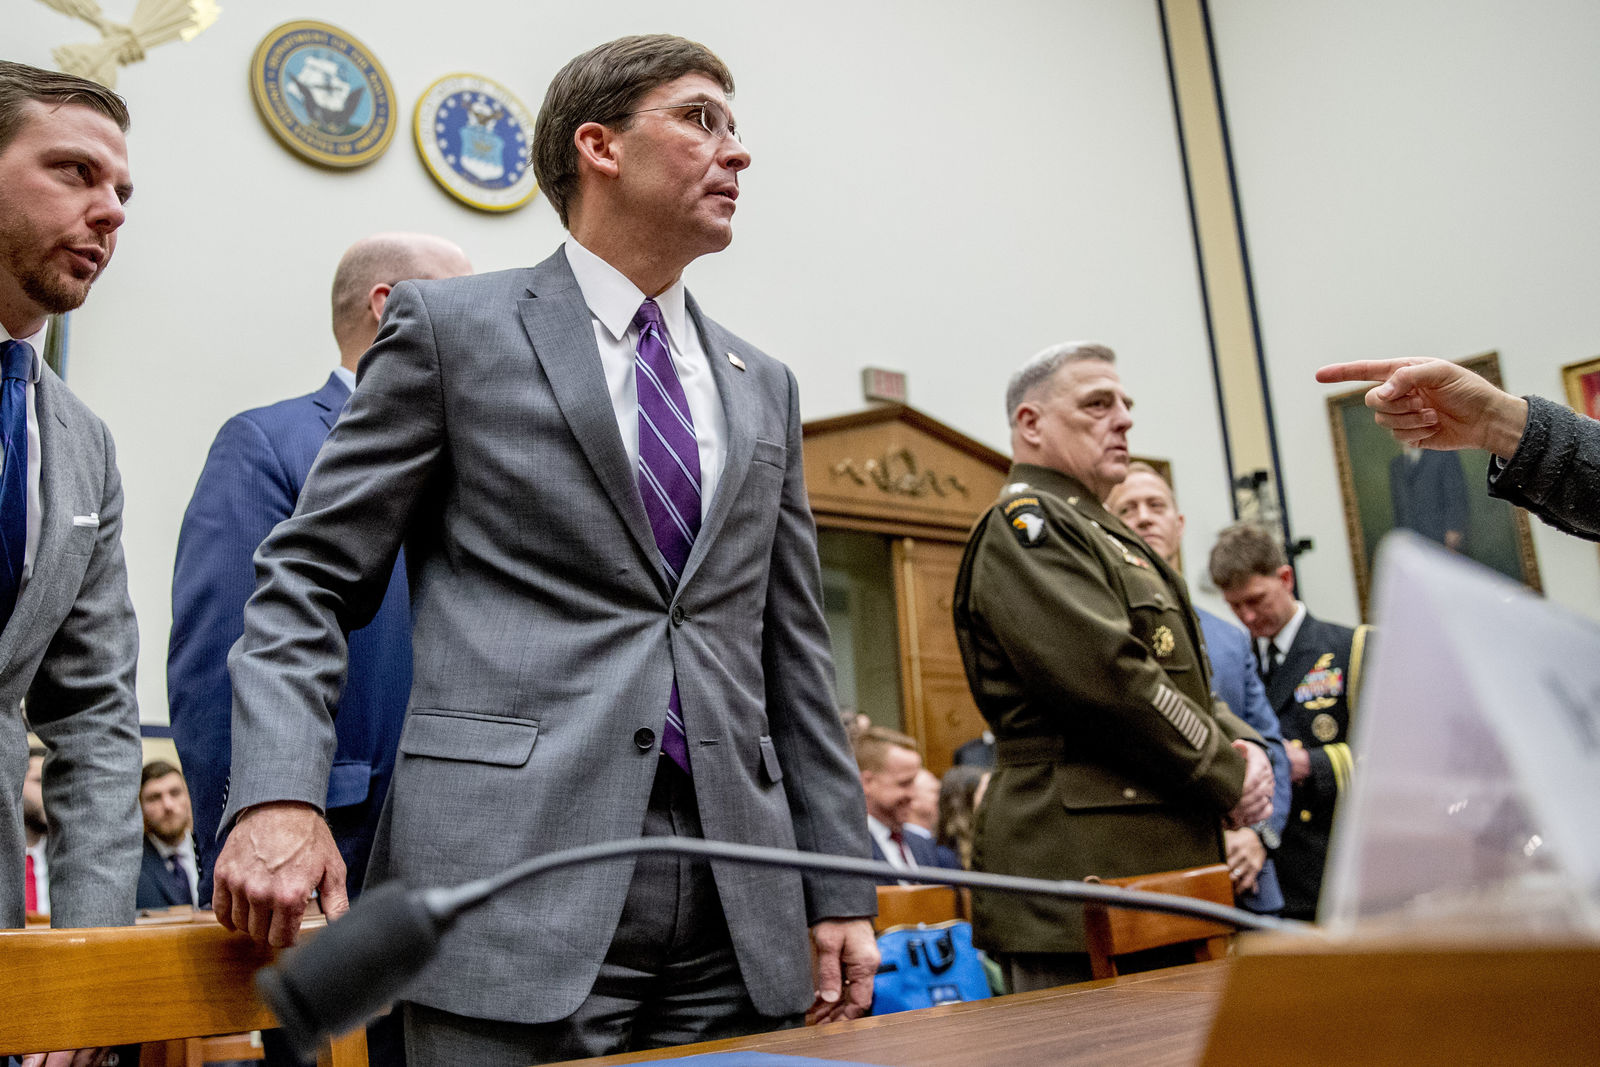 Defense Secretary Mark Esper, left, and Joint Chiefs of Staff Chairman Gen. Mark Milley, right, arrive for a House Armed Services Committee hearing on Capitol Hill, Wednesday, Feb. 26, 2020, in Washington. (AP Photo/Andrew Harnik)